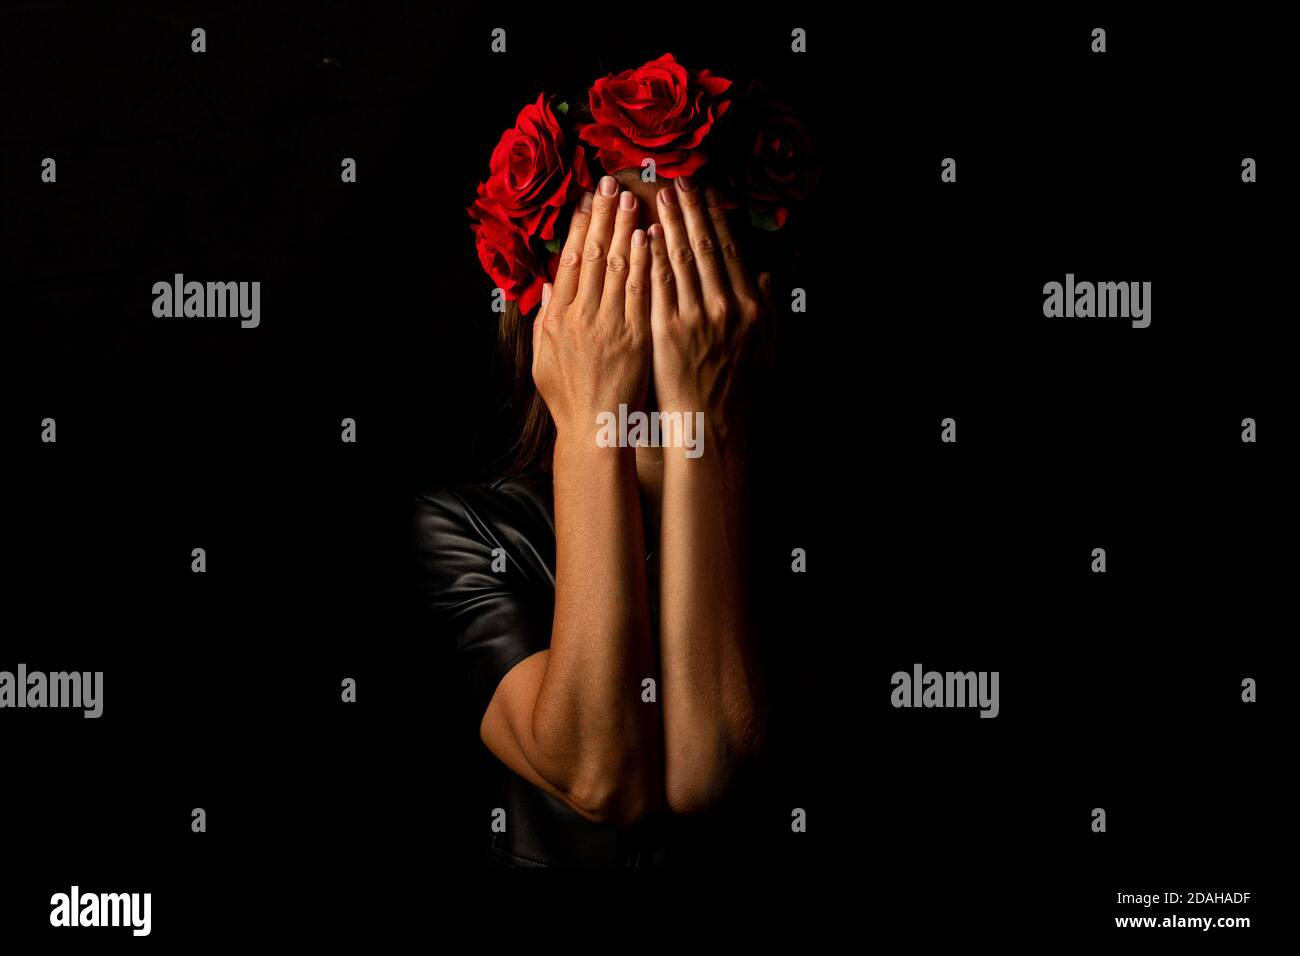 Young woman in a wreath of flowers, covering her face with her palms on a black background. Stock Photo